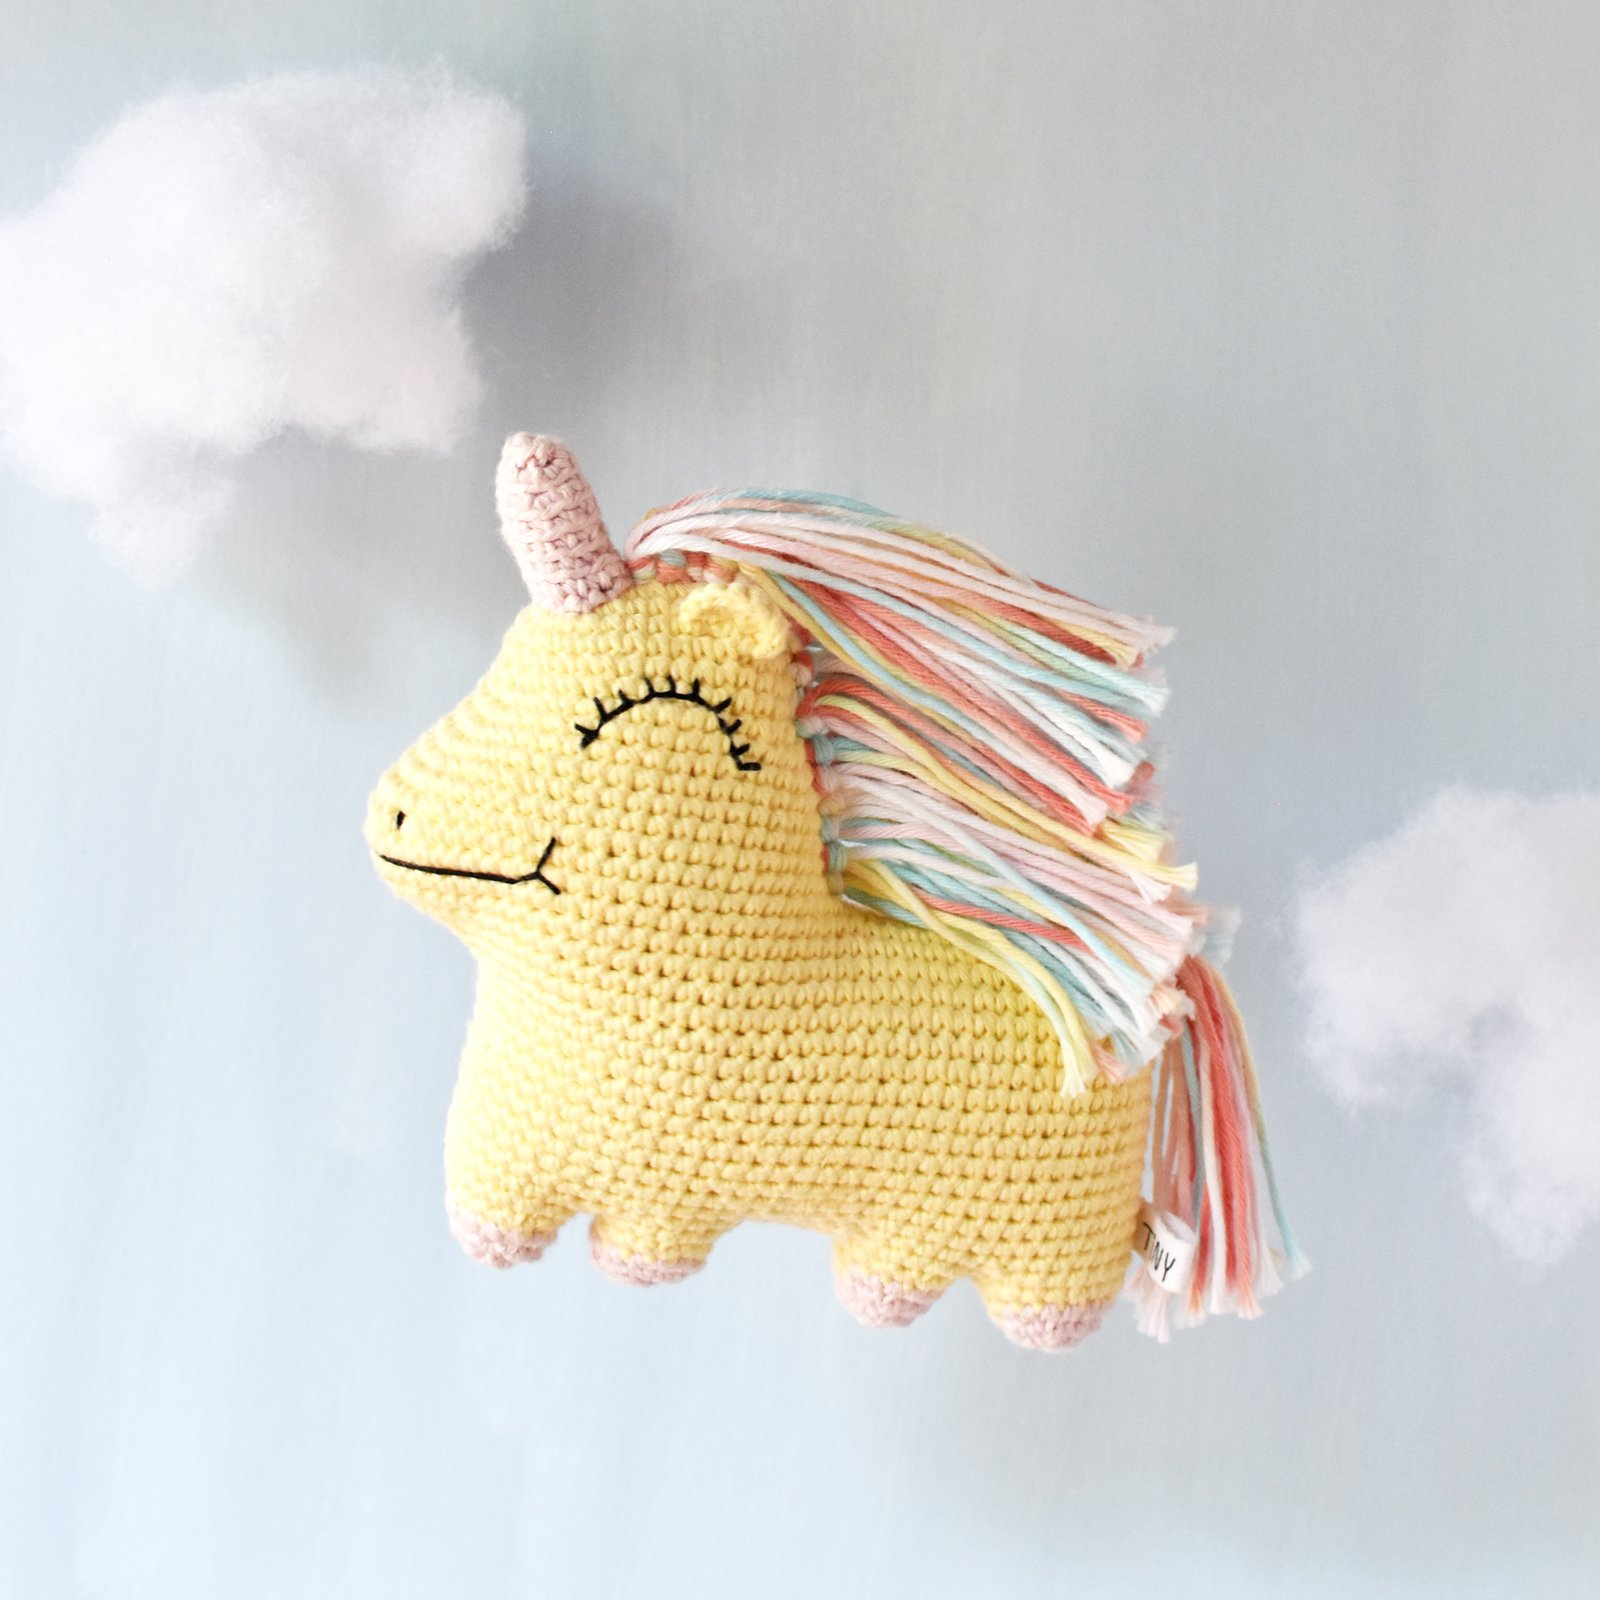 Yellow and pink pastel Uni Queen unicorn crochet doll flying in front of a pale blue background with clouds made of toy stuffing.